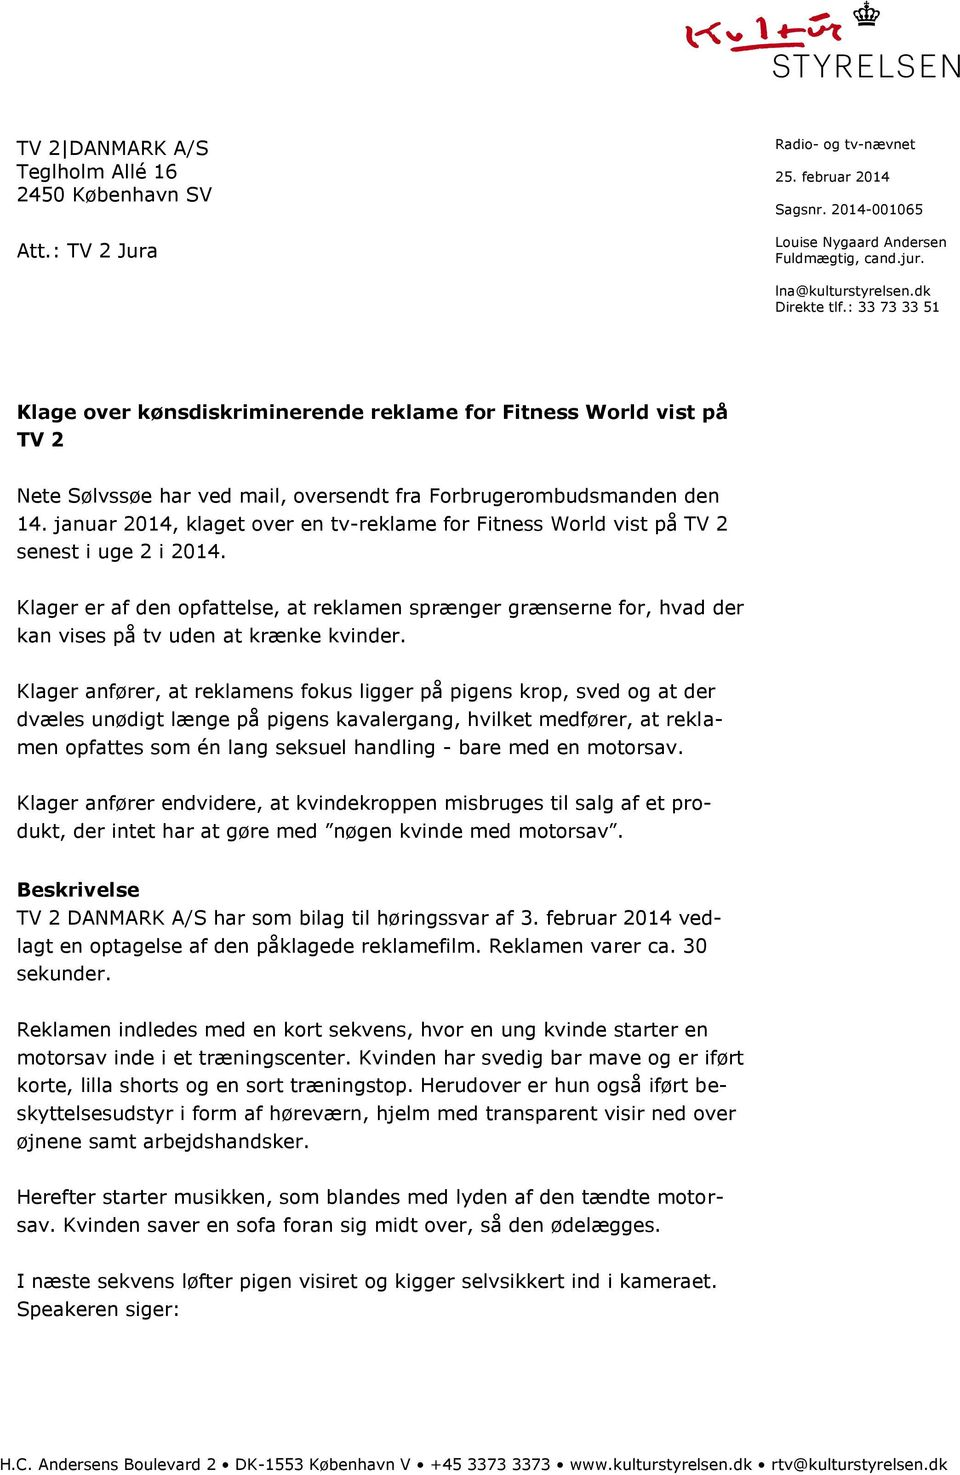 januar 2014, klaget over en tv-reklame for Fitness World vist på TV 2 senest i uge 2 i 2014.